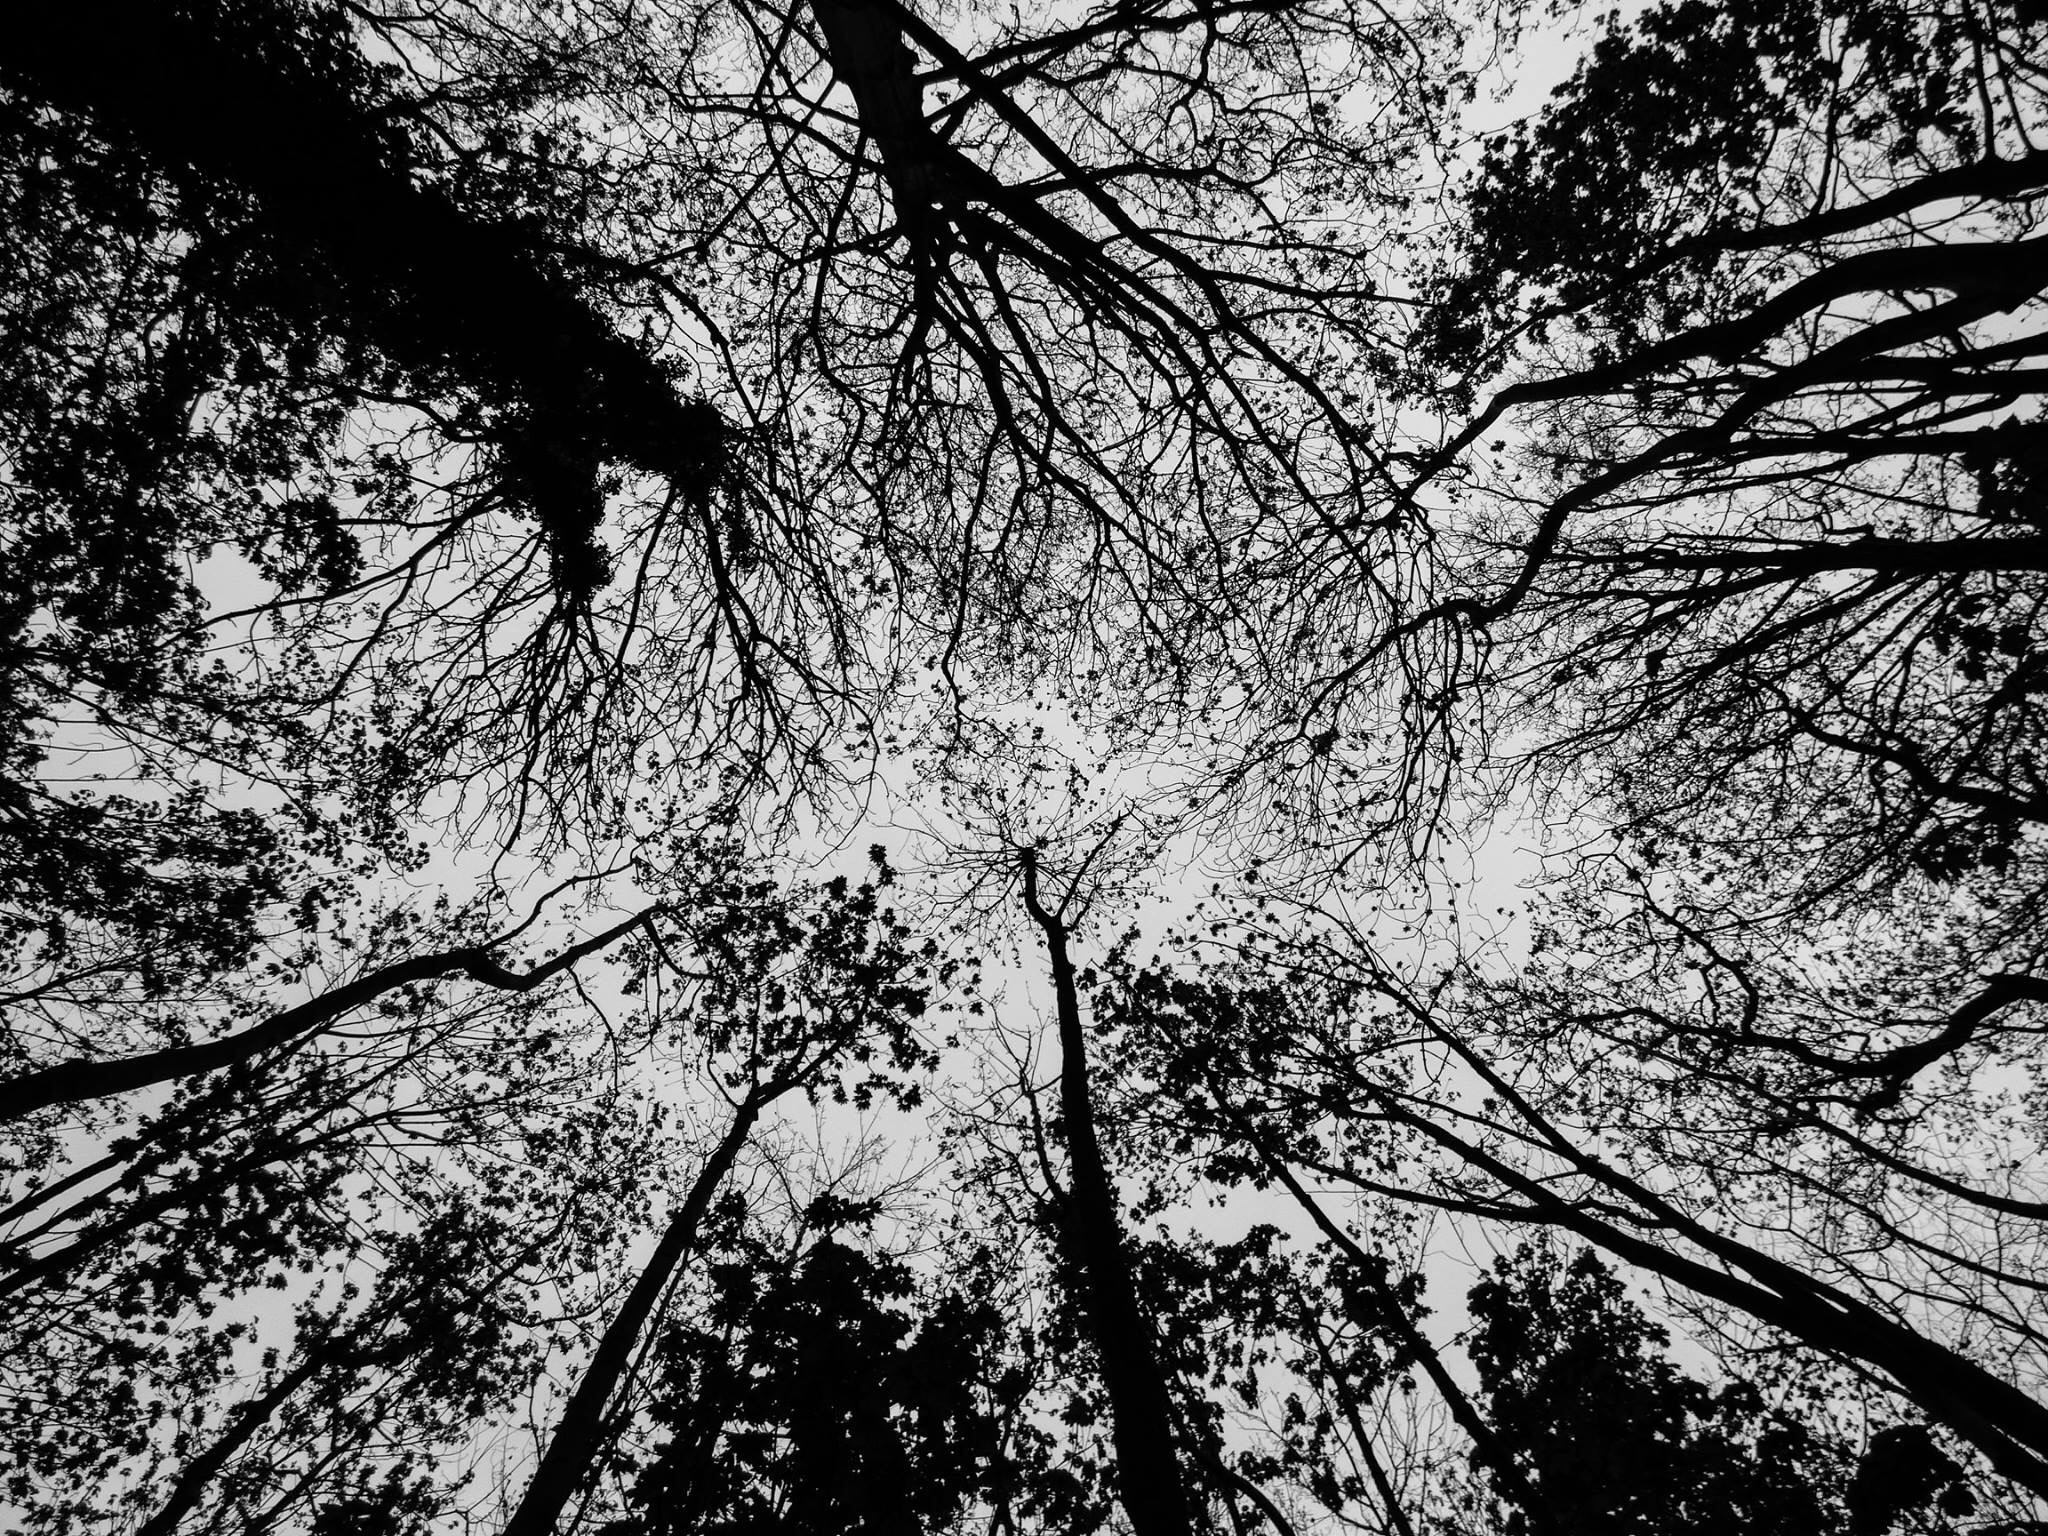 Looking up at the branches  by Ross Hammond